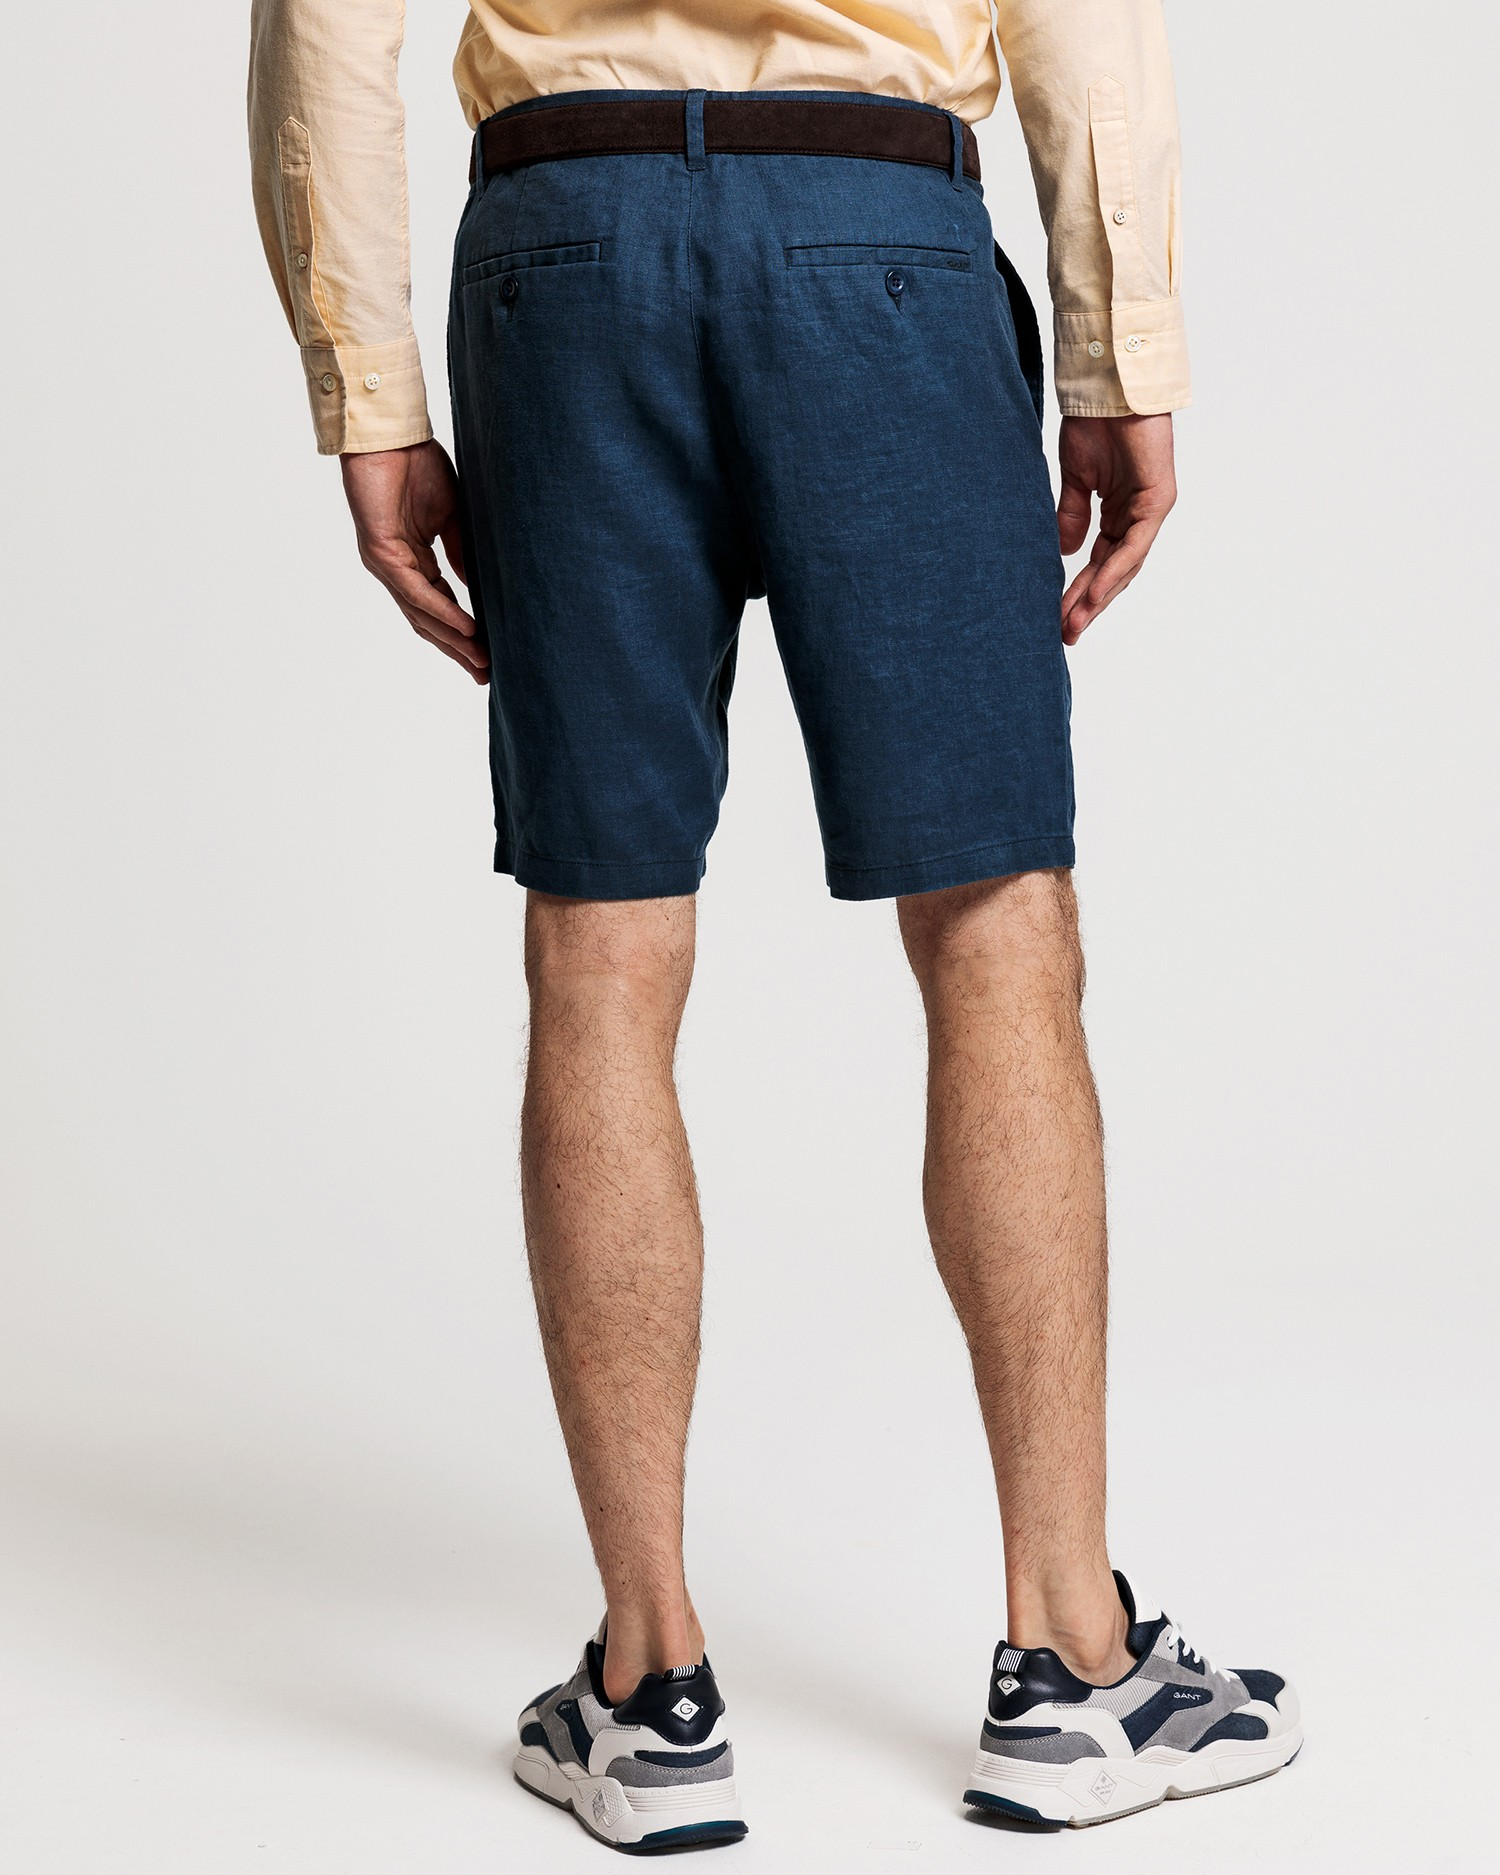 GANT Men's Navy Blue Linen Bermuda Shorts - 205026